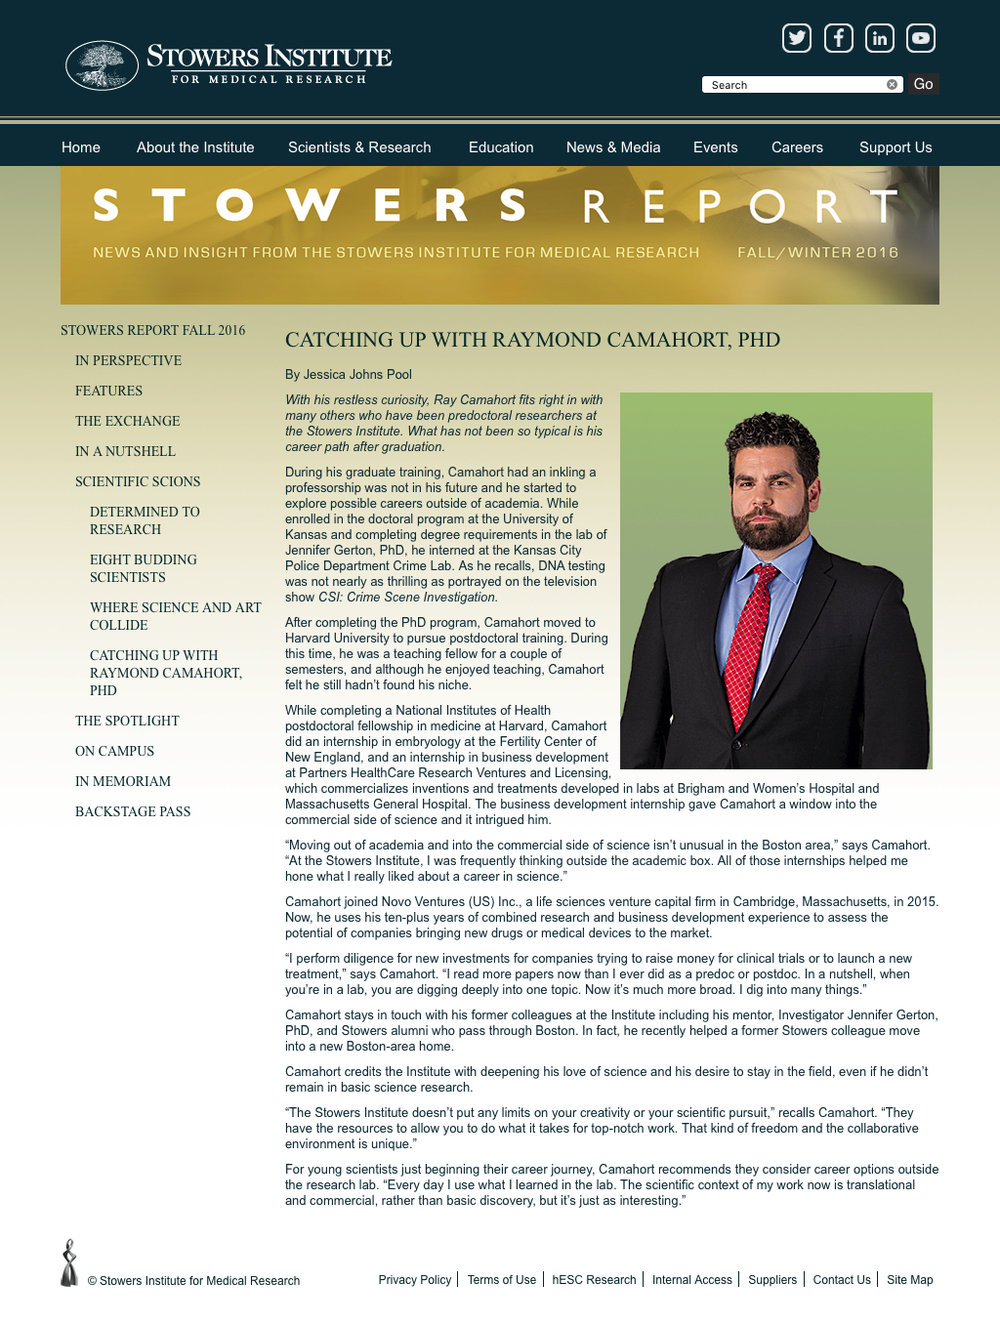 Stowers Report_Camahort_Fall 2016.jpg